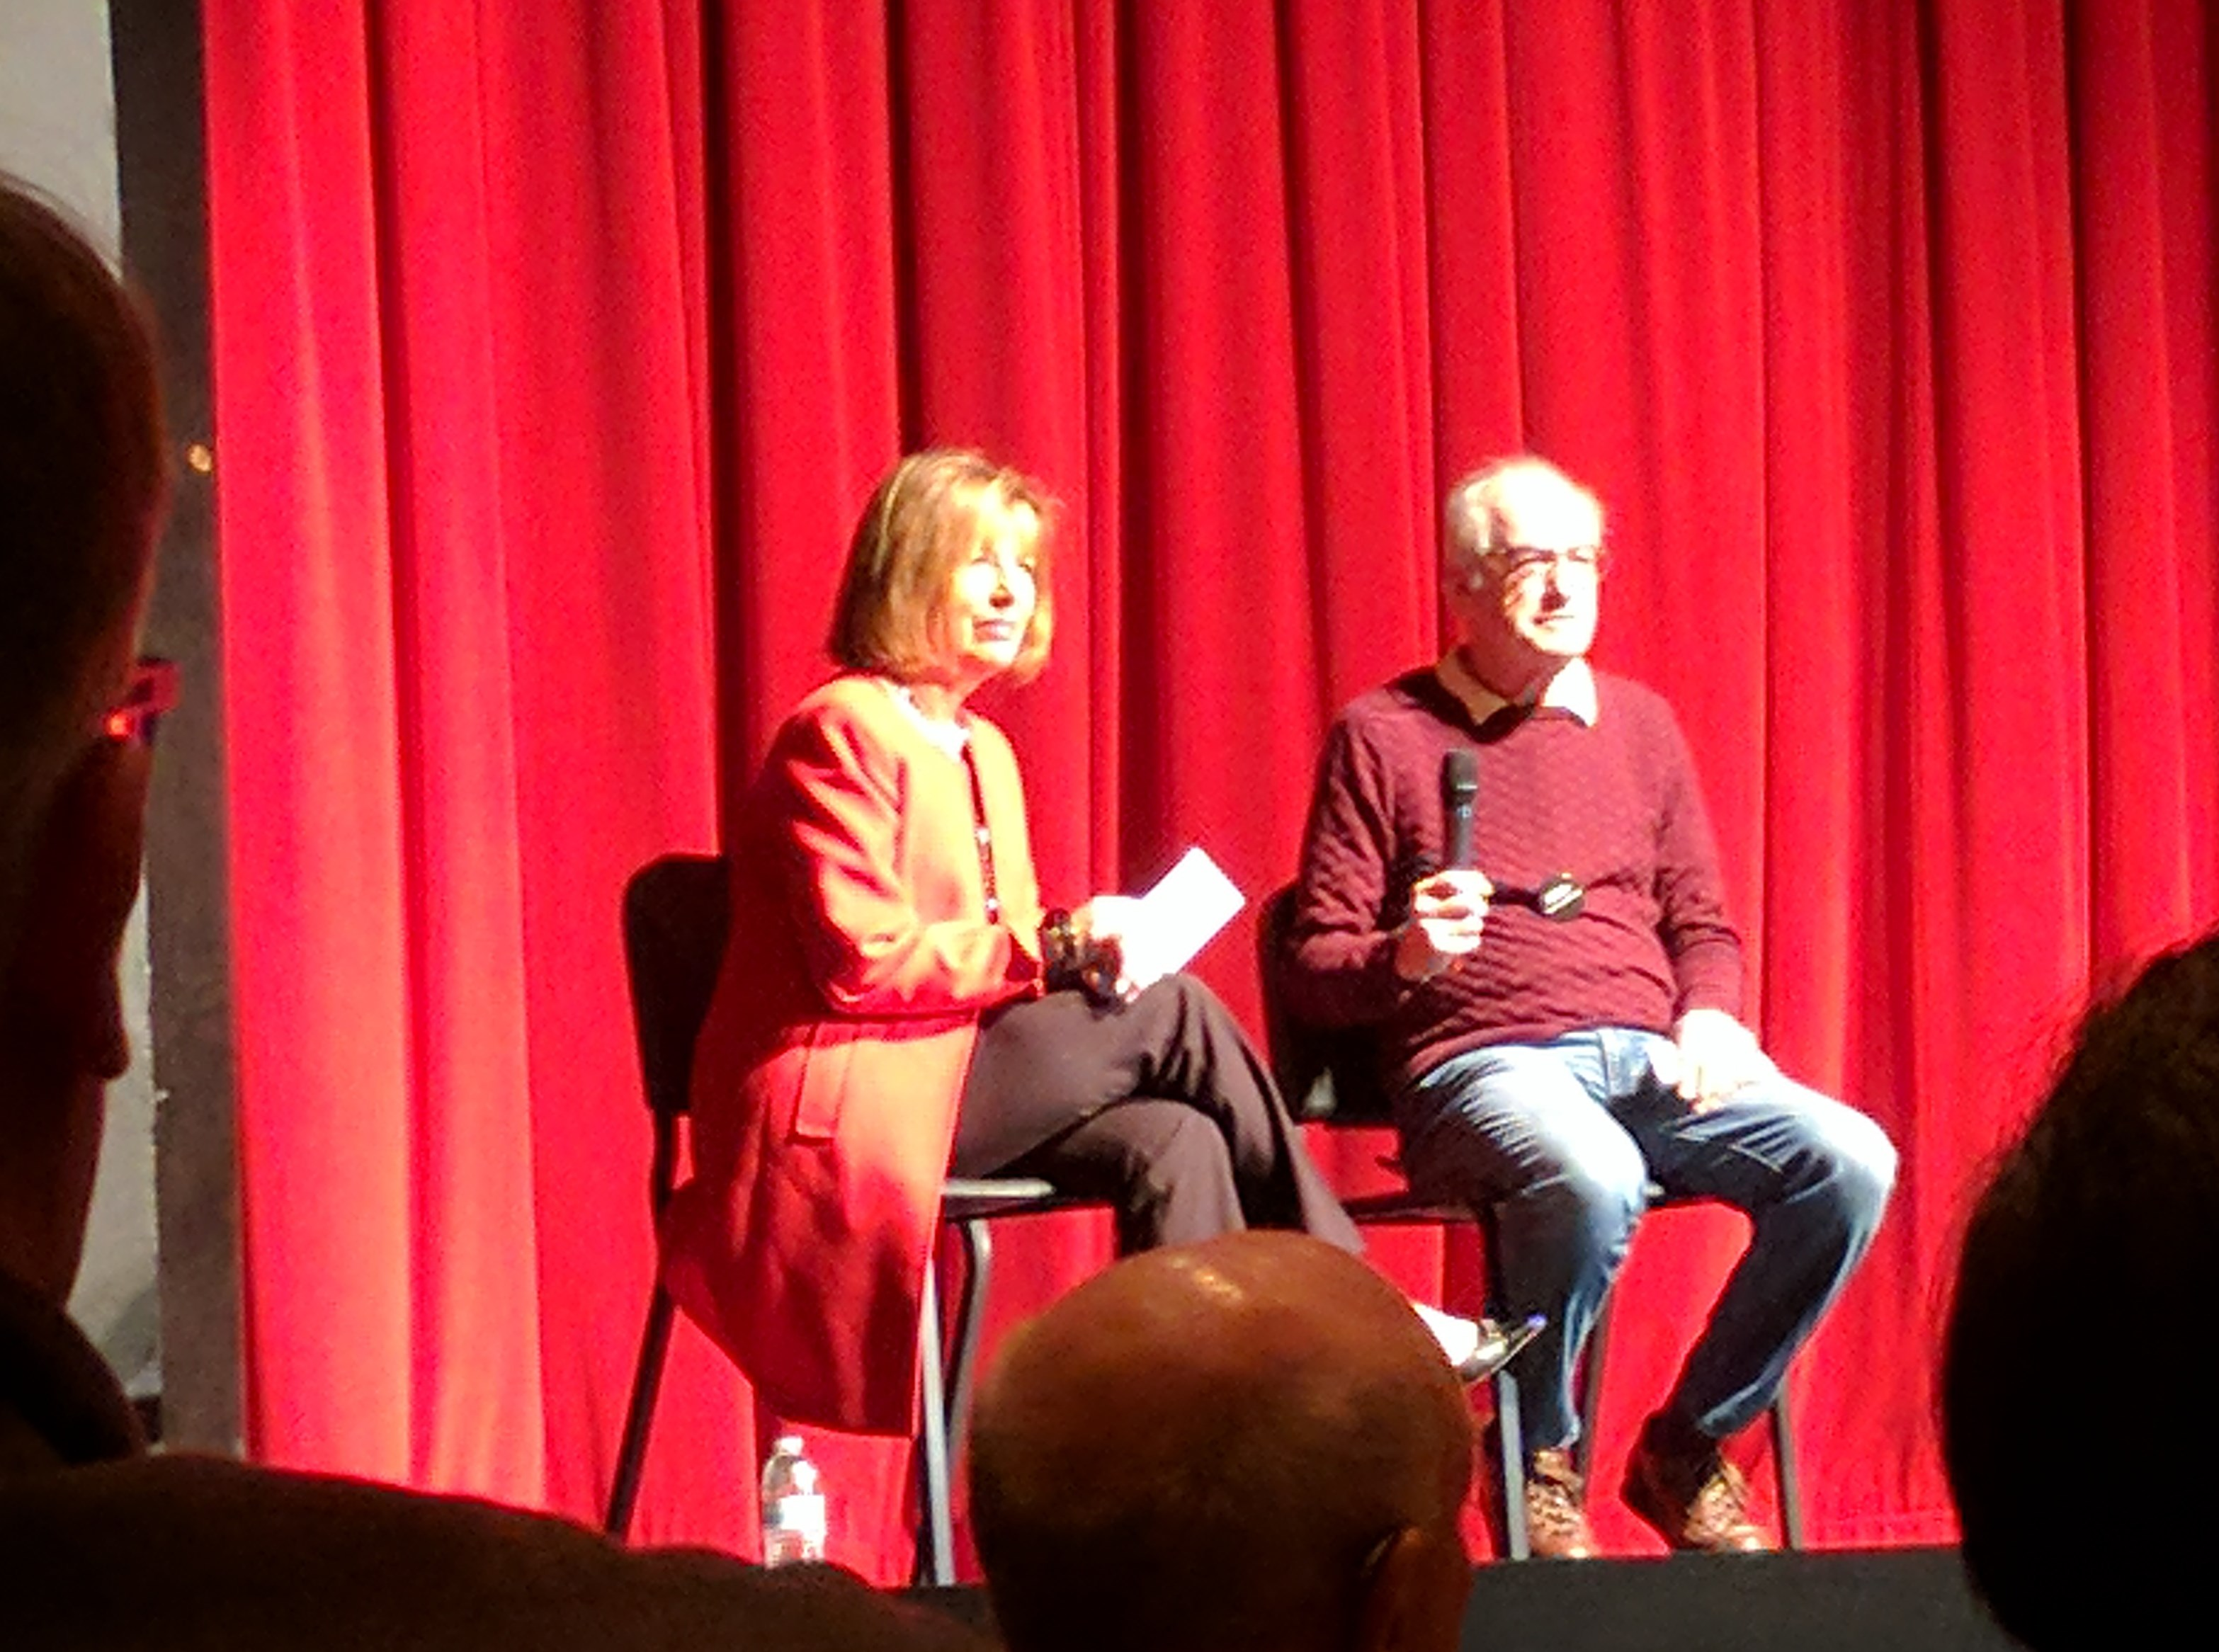 Stan+Goldberg%2C+president+of+the+Lowell+High+School+PTSA%2C+organized+the+event.+He+and+Speier+had+a+brief+discussion+before+the+audience+received+a+microphone.